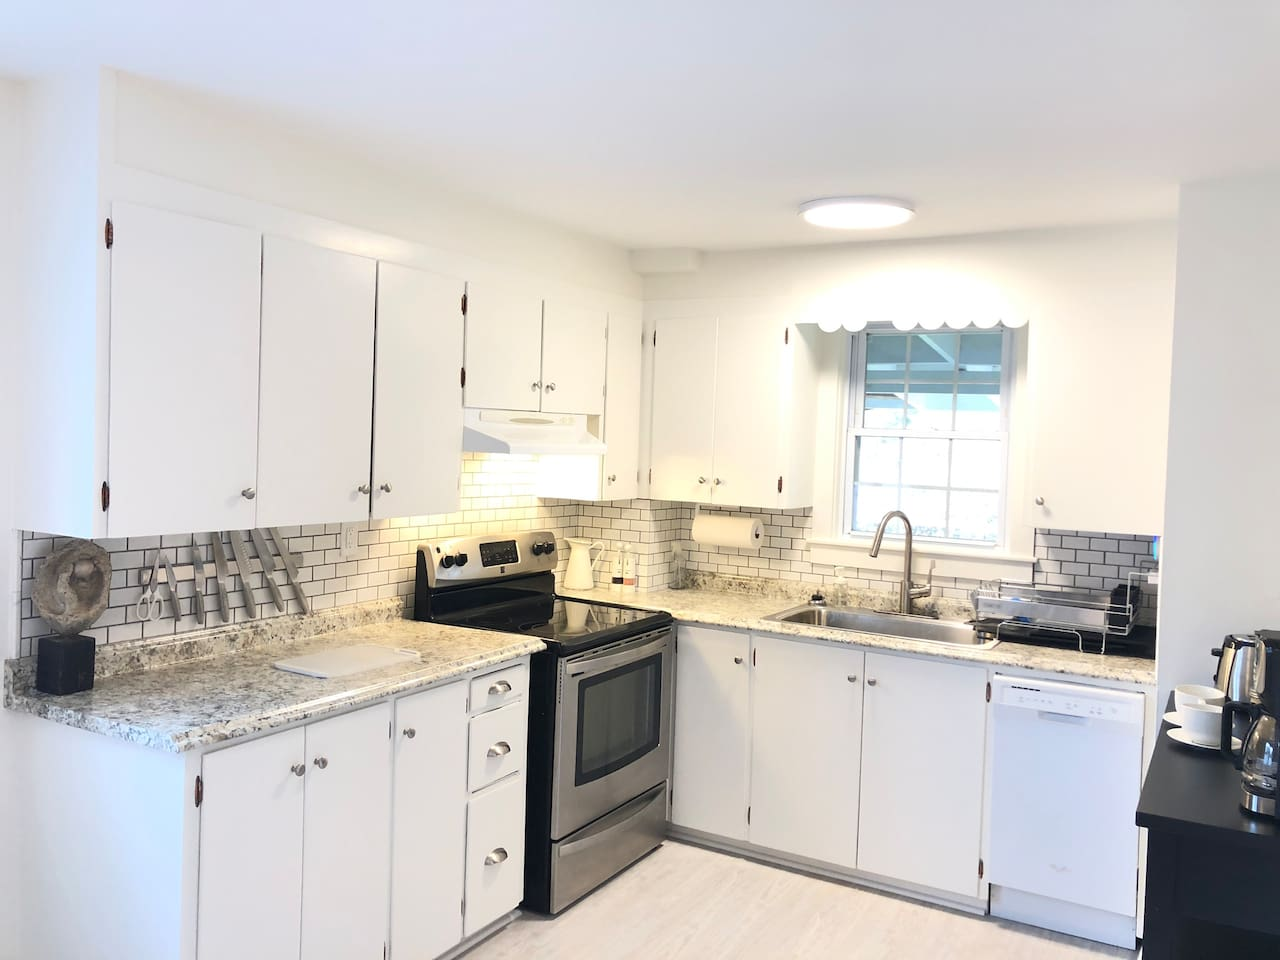 A cook's kitchen with necessary cooking supplies for a quick meal on the way out to enjoy a hike or to prepare a nice dinner. Includes dishwasher and electronic range.